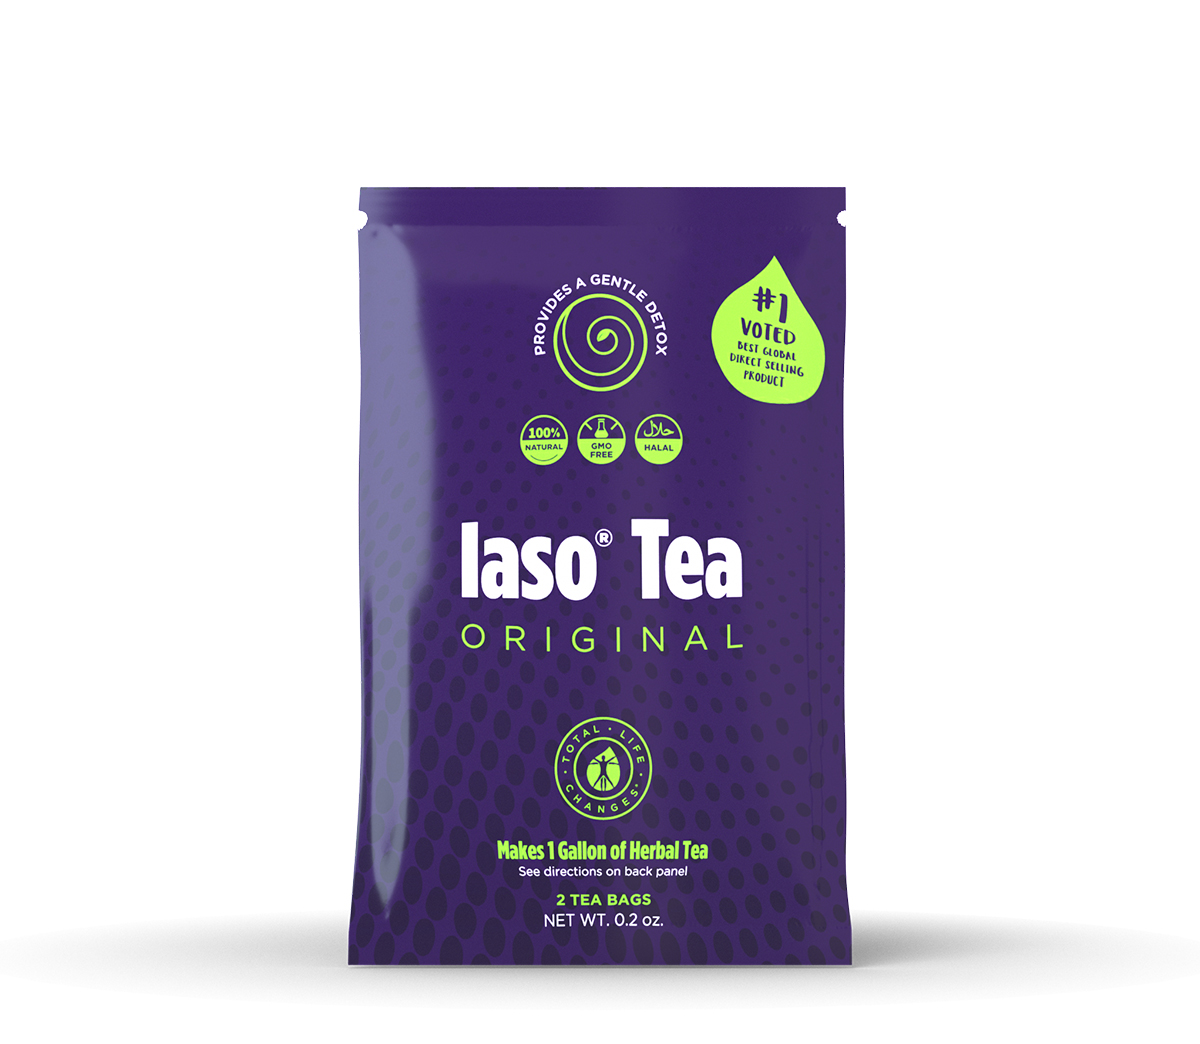 Laso Tea job openings